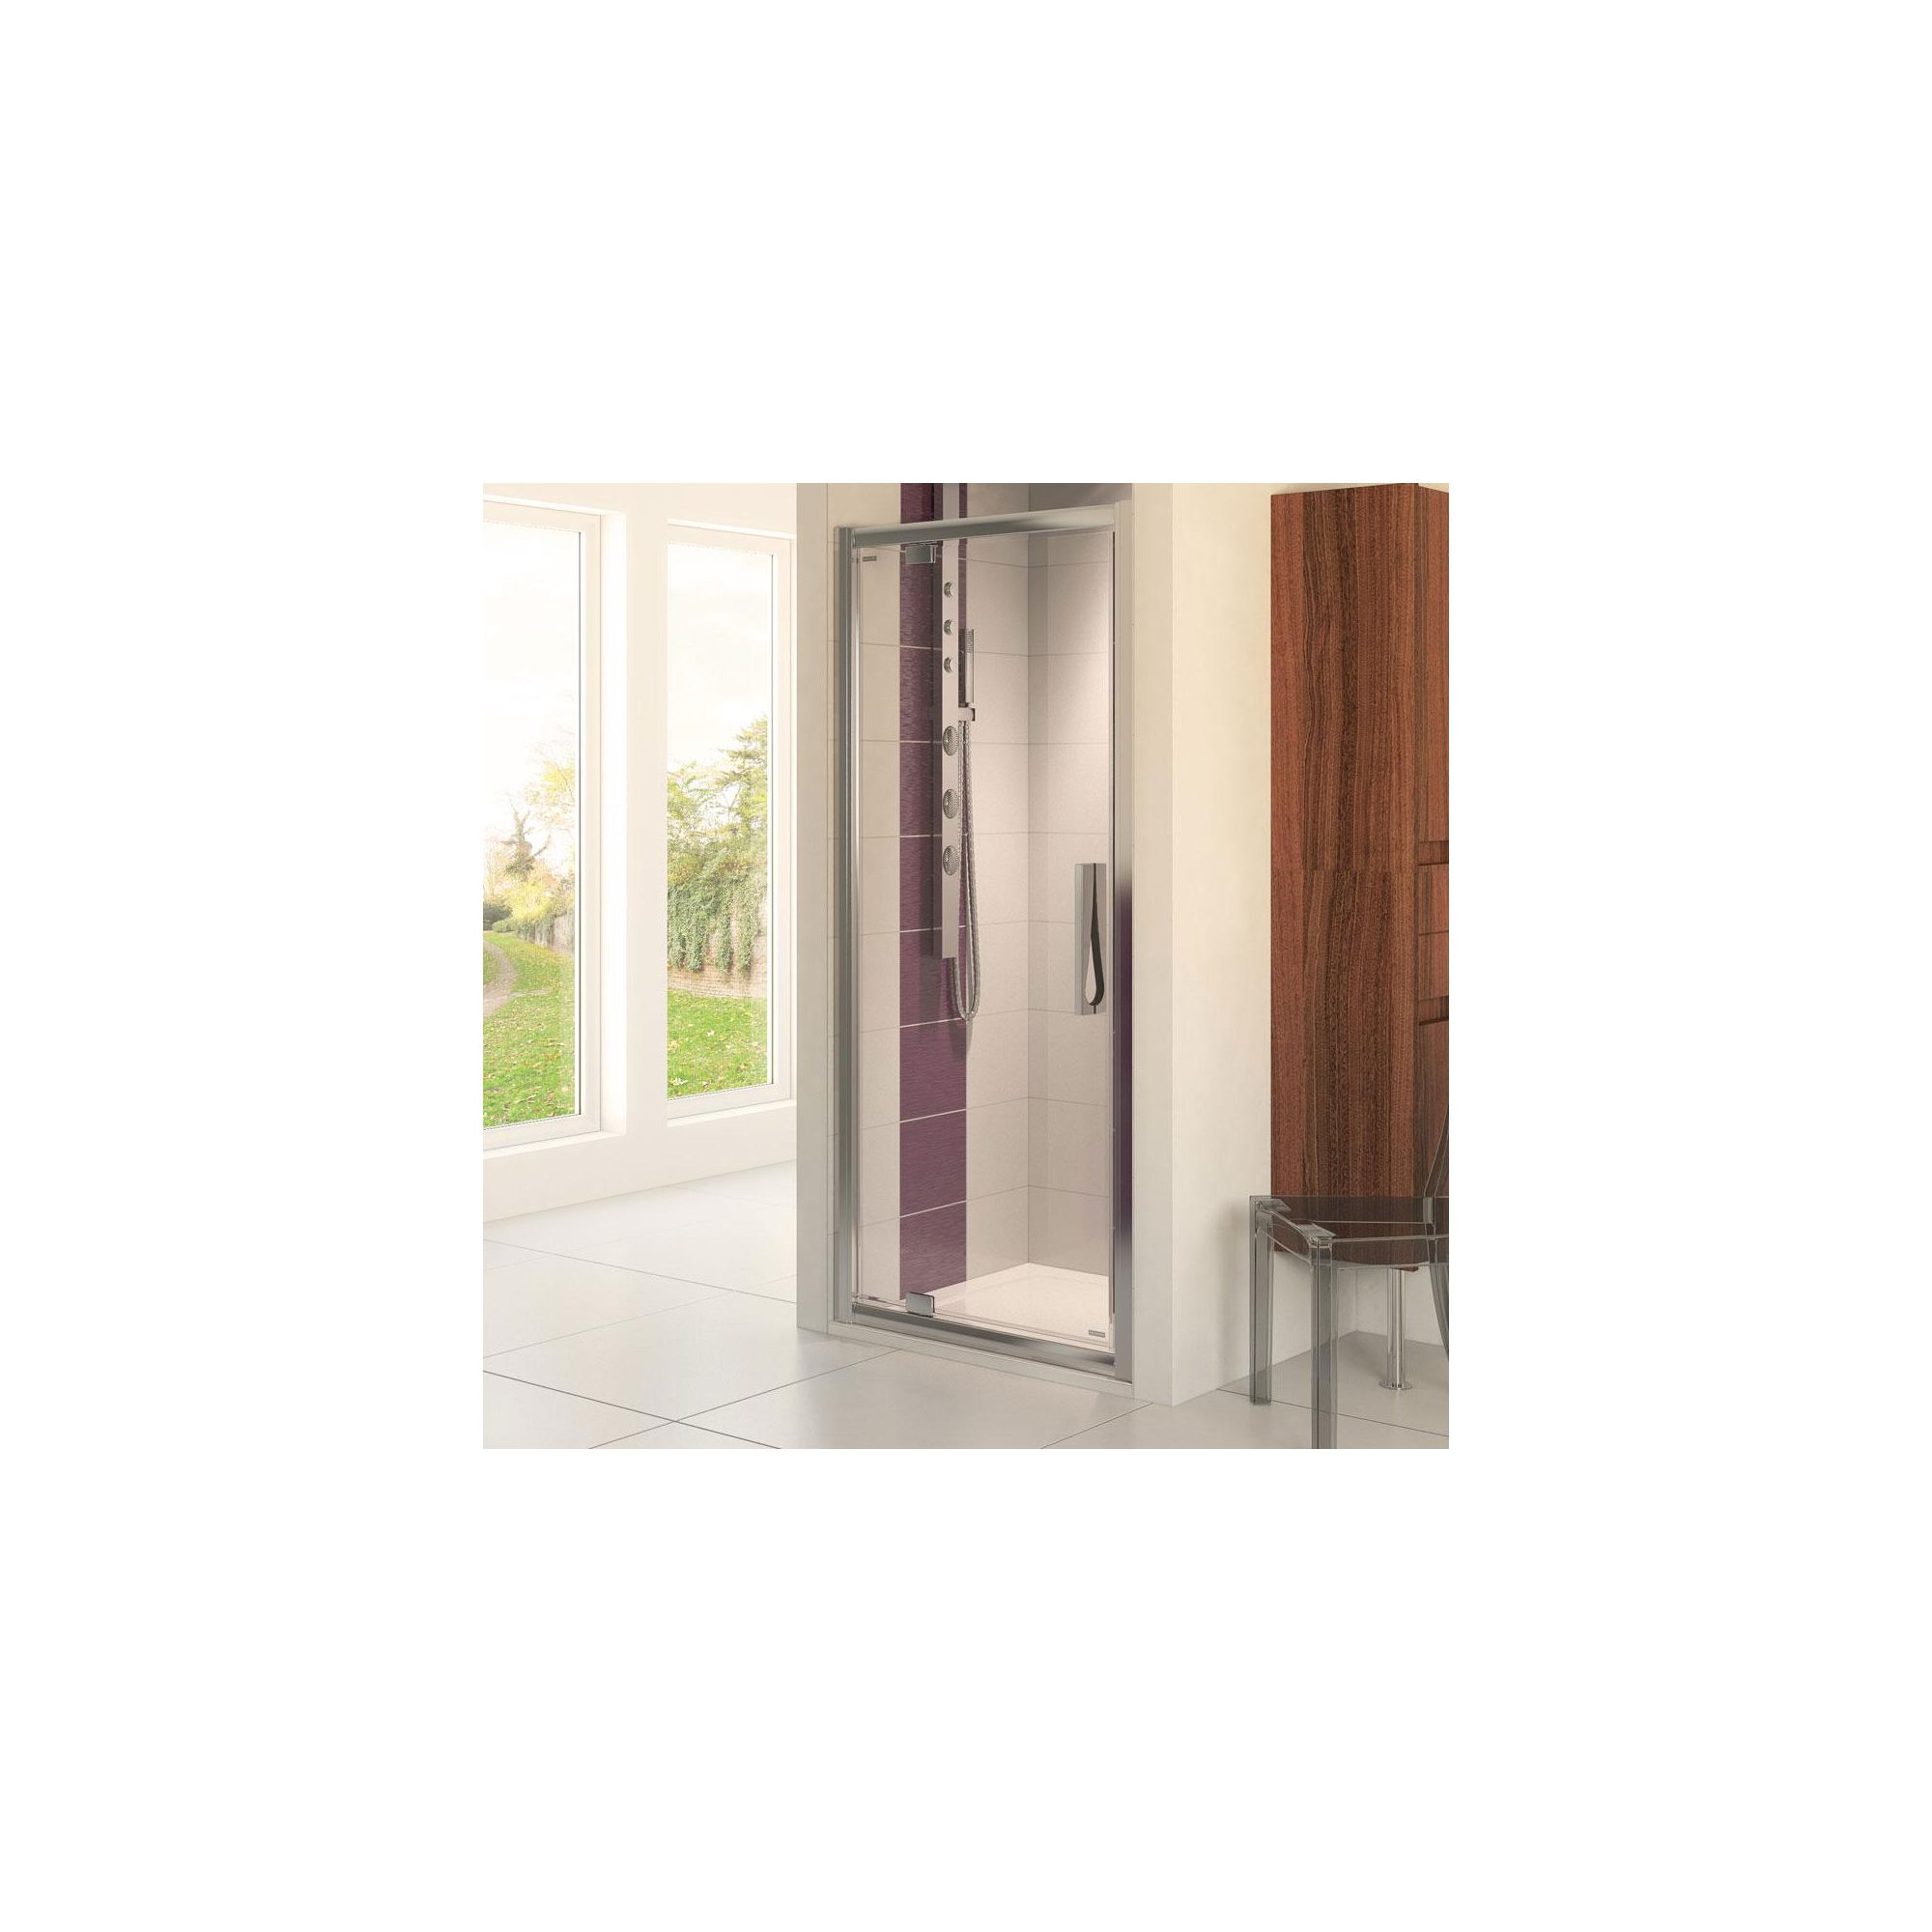 Aqualux AQUA8 Glide Pivot Shower Door, 900mm Wide, Polished Silver Frame, 8mm Glass at Tesco Direct